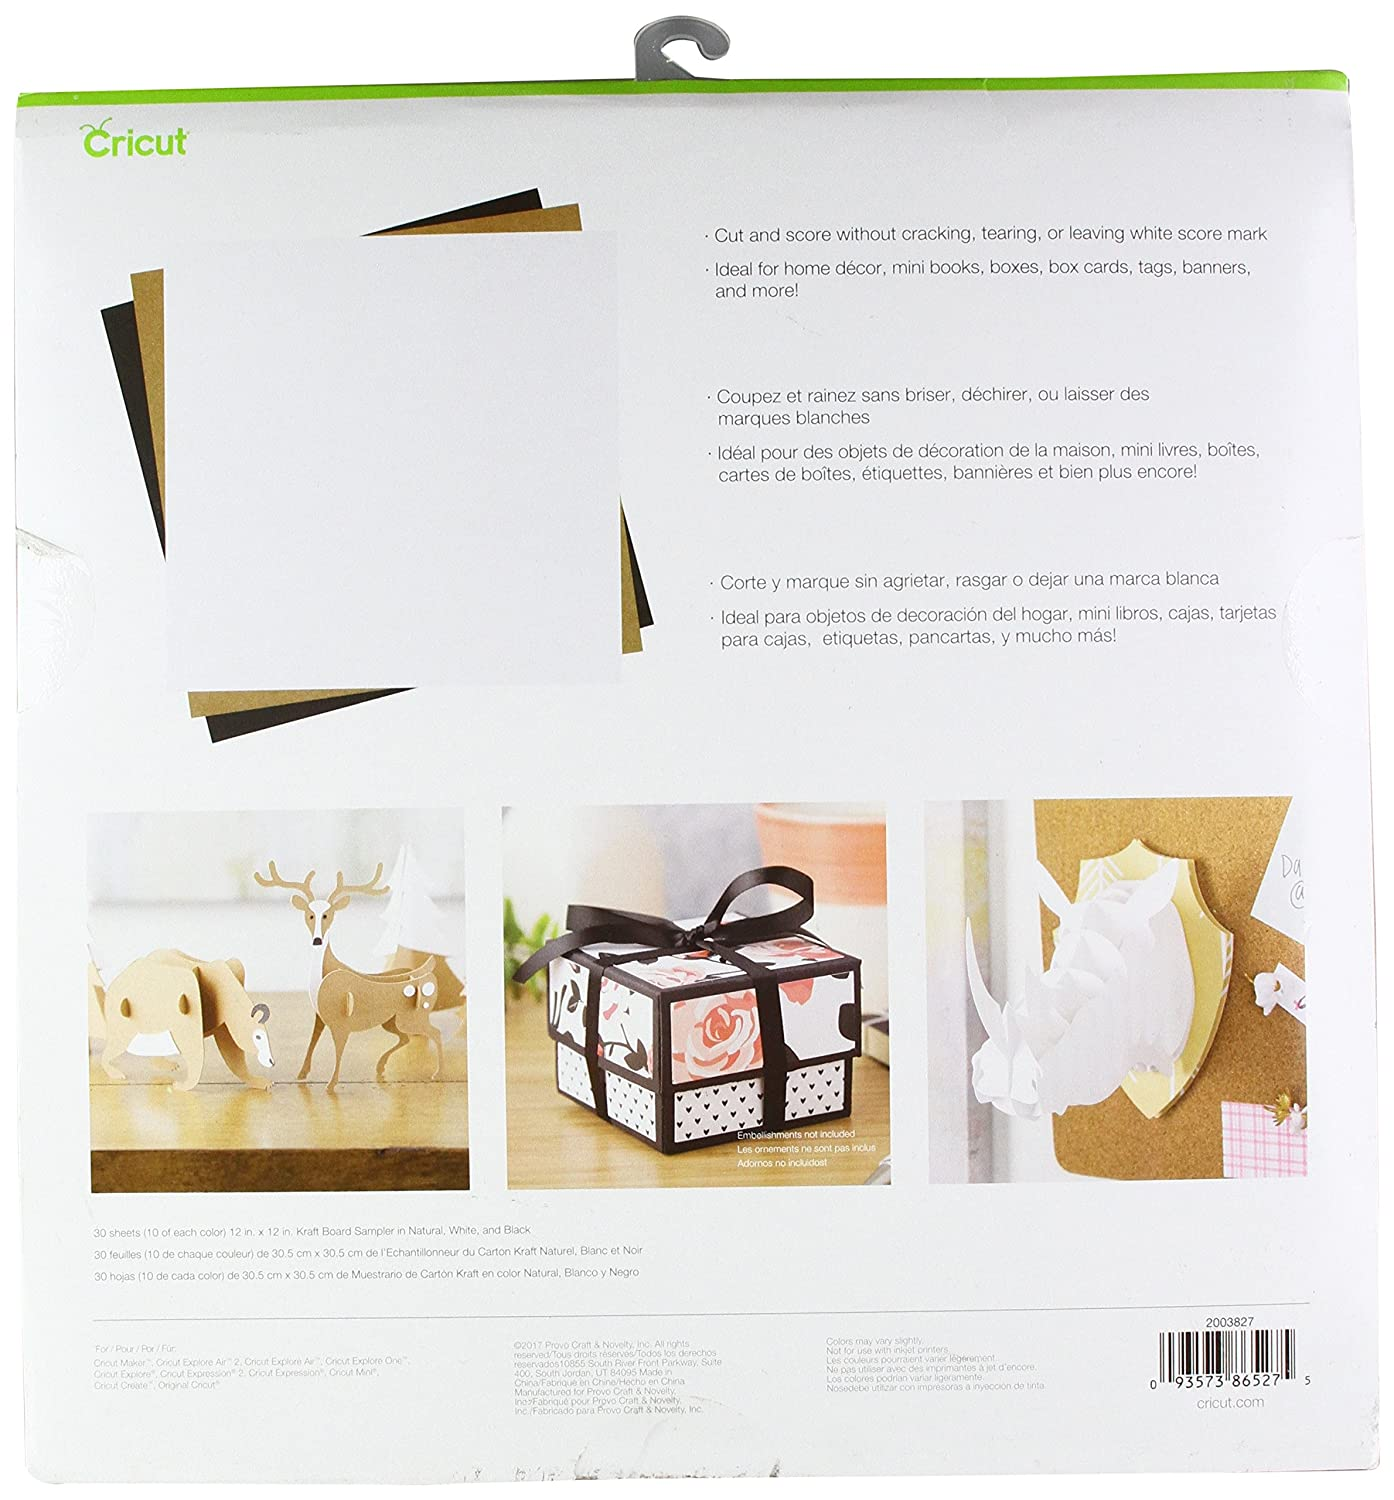 Amazon.com: Cricut KRAFTBOARD Sampler 12x12 (30), 12